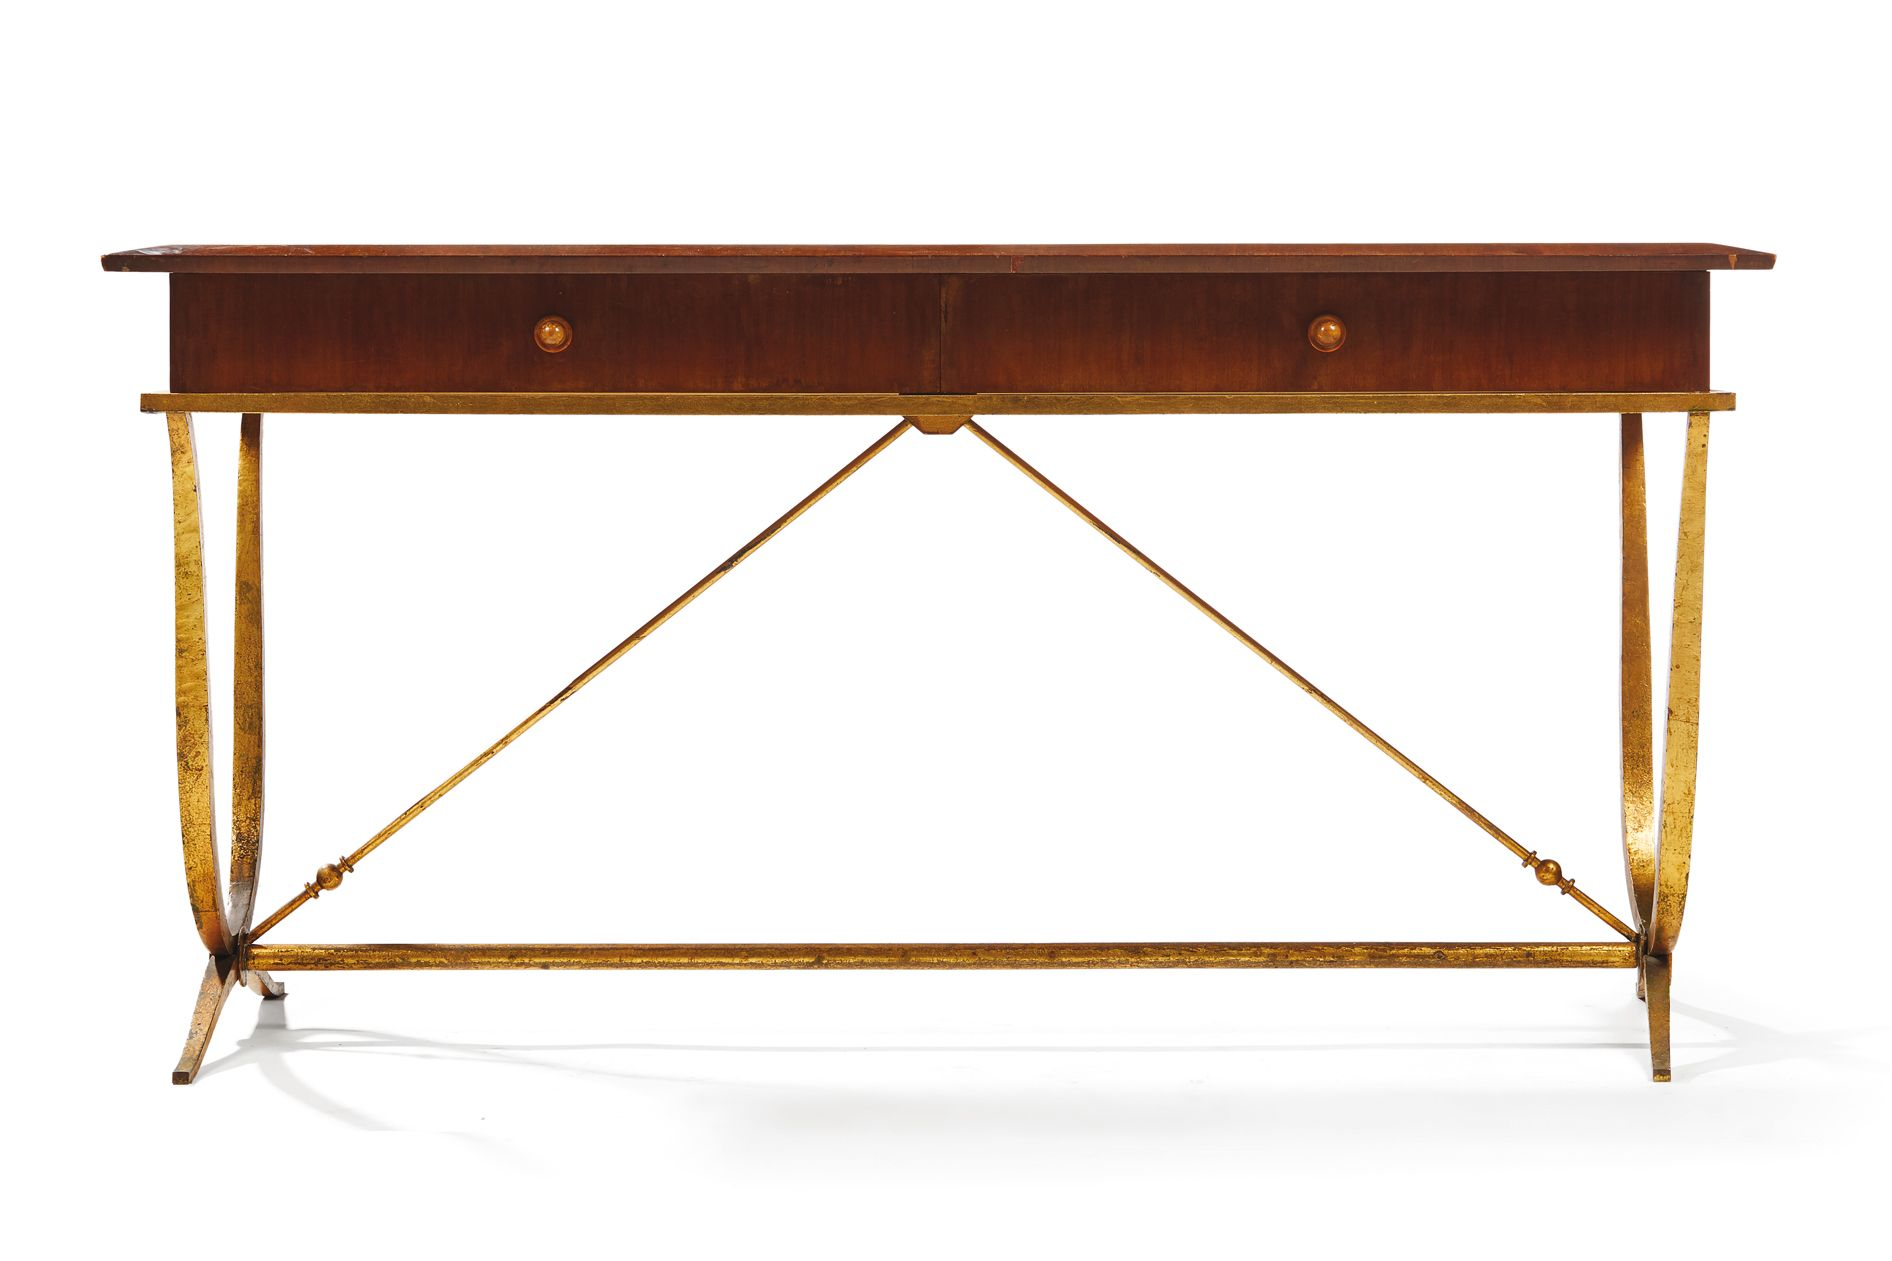 RENE PROU (1889-1947) Rectangular desk in mahogany veneer opening in belt by two drawers and resting on a base of beaten iron with bronze patina. Around 1940. H: 72 cm   W: 146 cm D: 60,5 cm